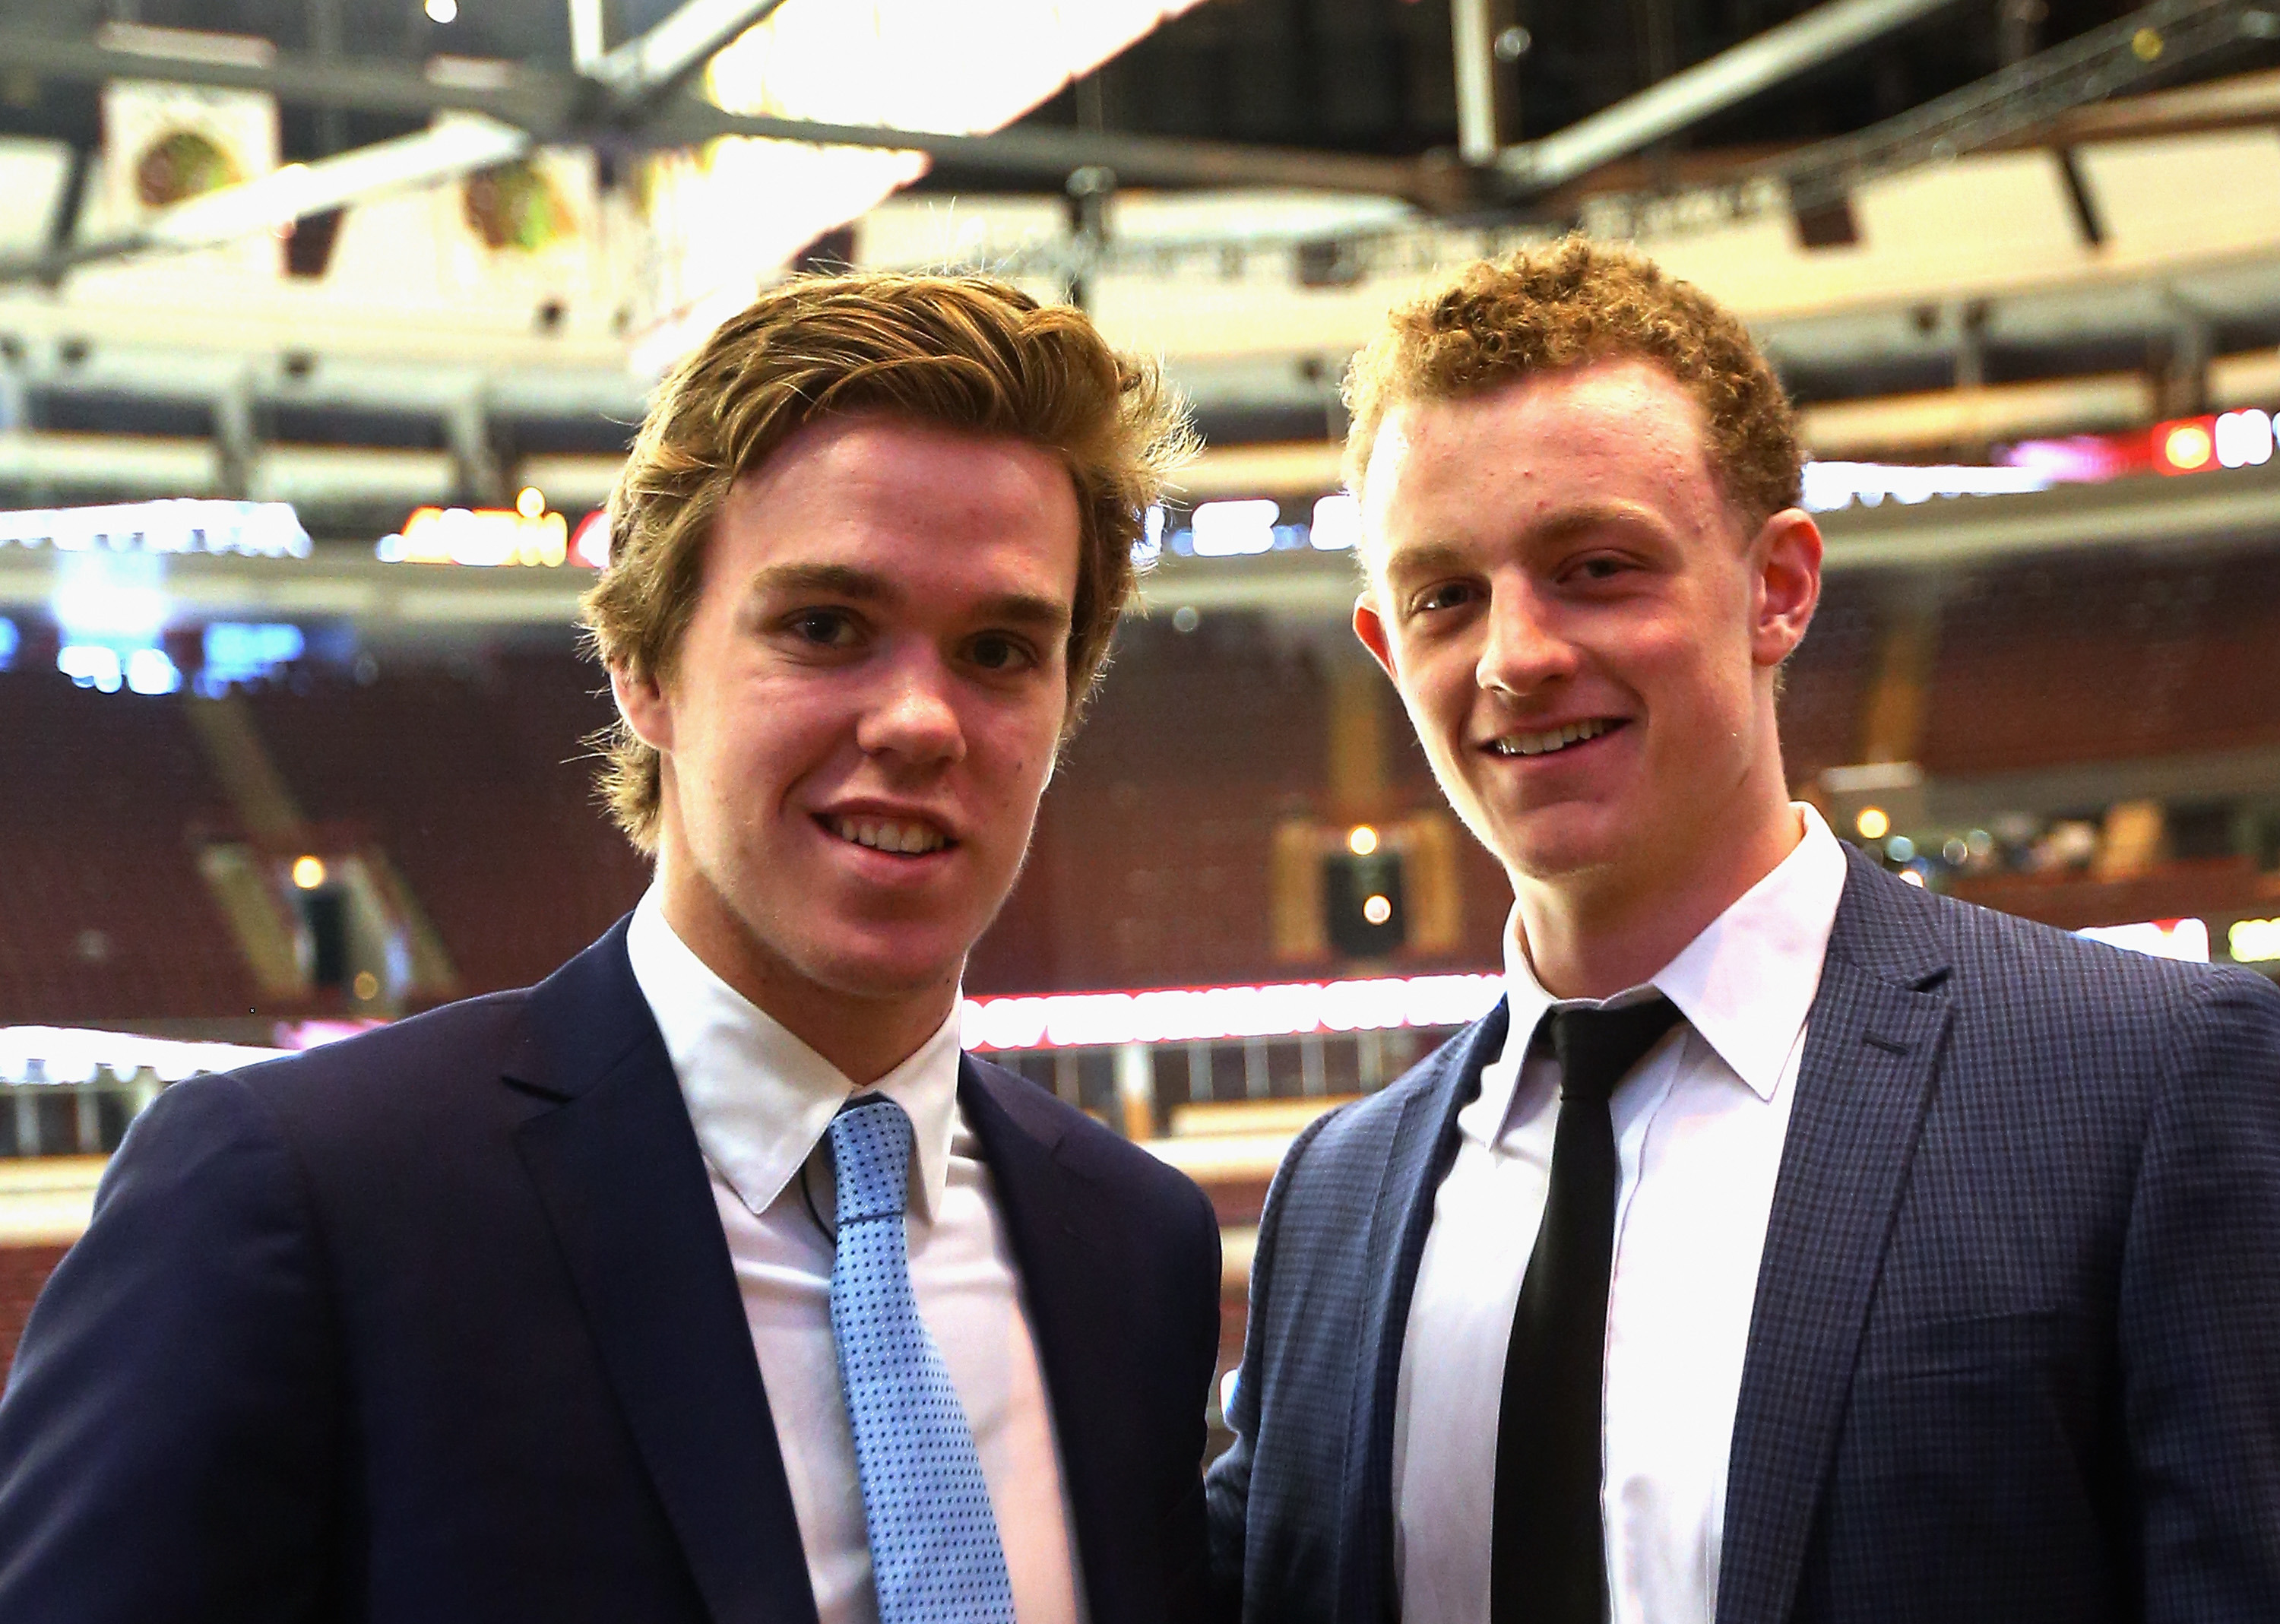 Connor McDavid, left, and Jack Eichel spent some time getting acquainted at their Stanley Cup tour in Chicago on Monday.